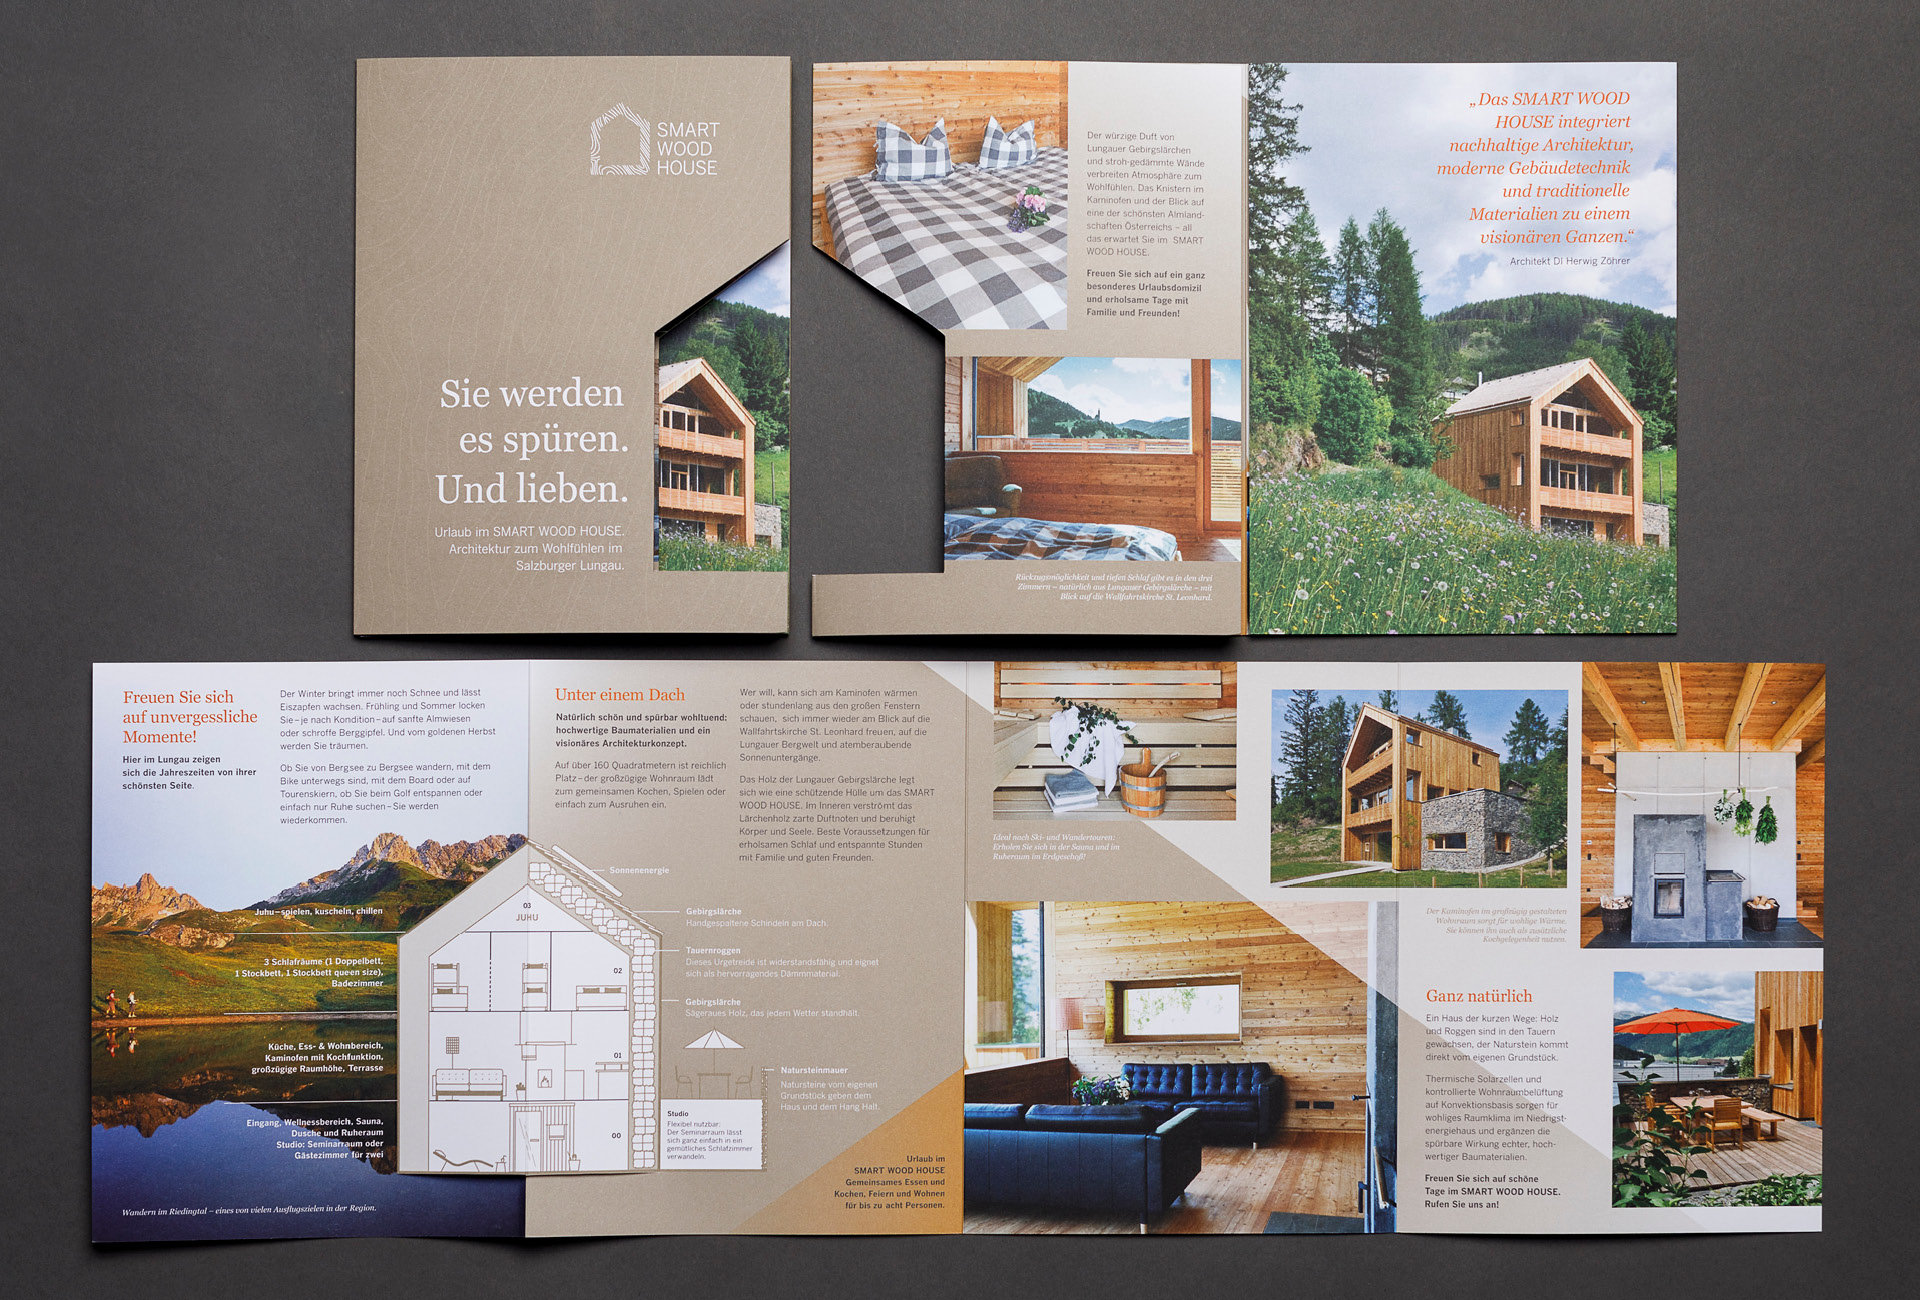 Corporate Identity für das Smart Wood House von der Werbeagentur look! design